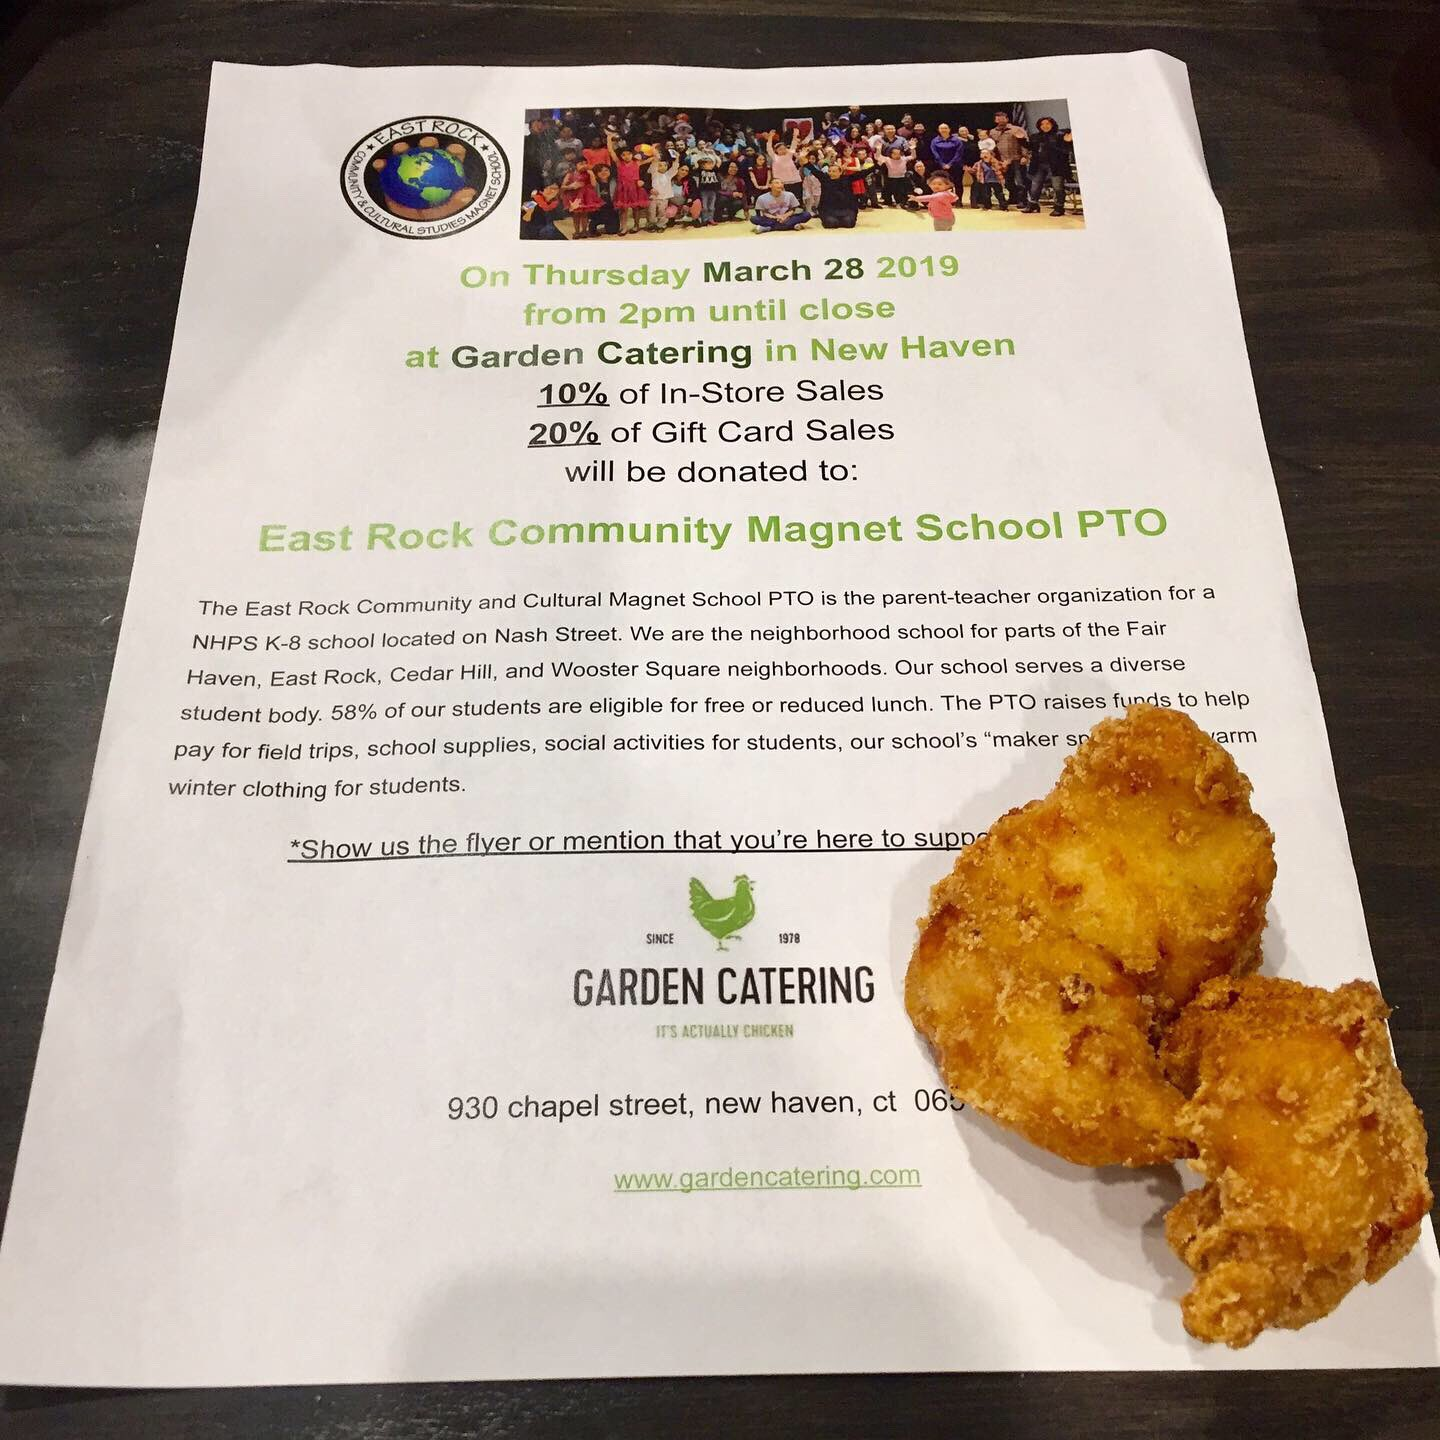 East Rock School Pto On Twitter We Re Nuggets About Gardencatering And Love Supporting Eastrockschoolpto East Rock Community Cultural Studies School Https T Co Yis8rolizl